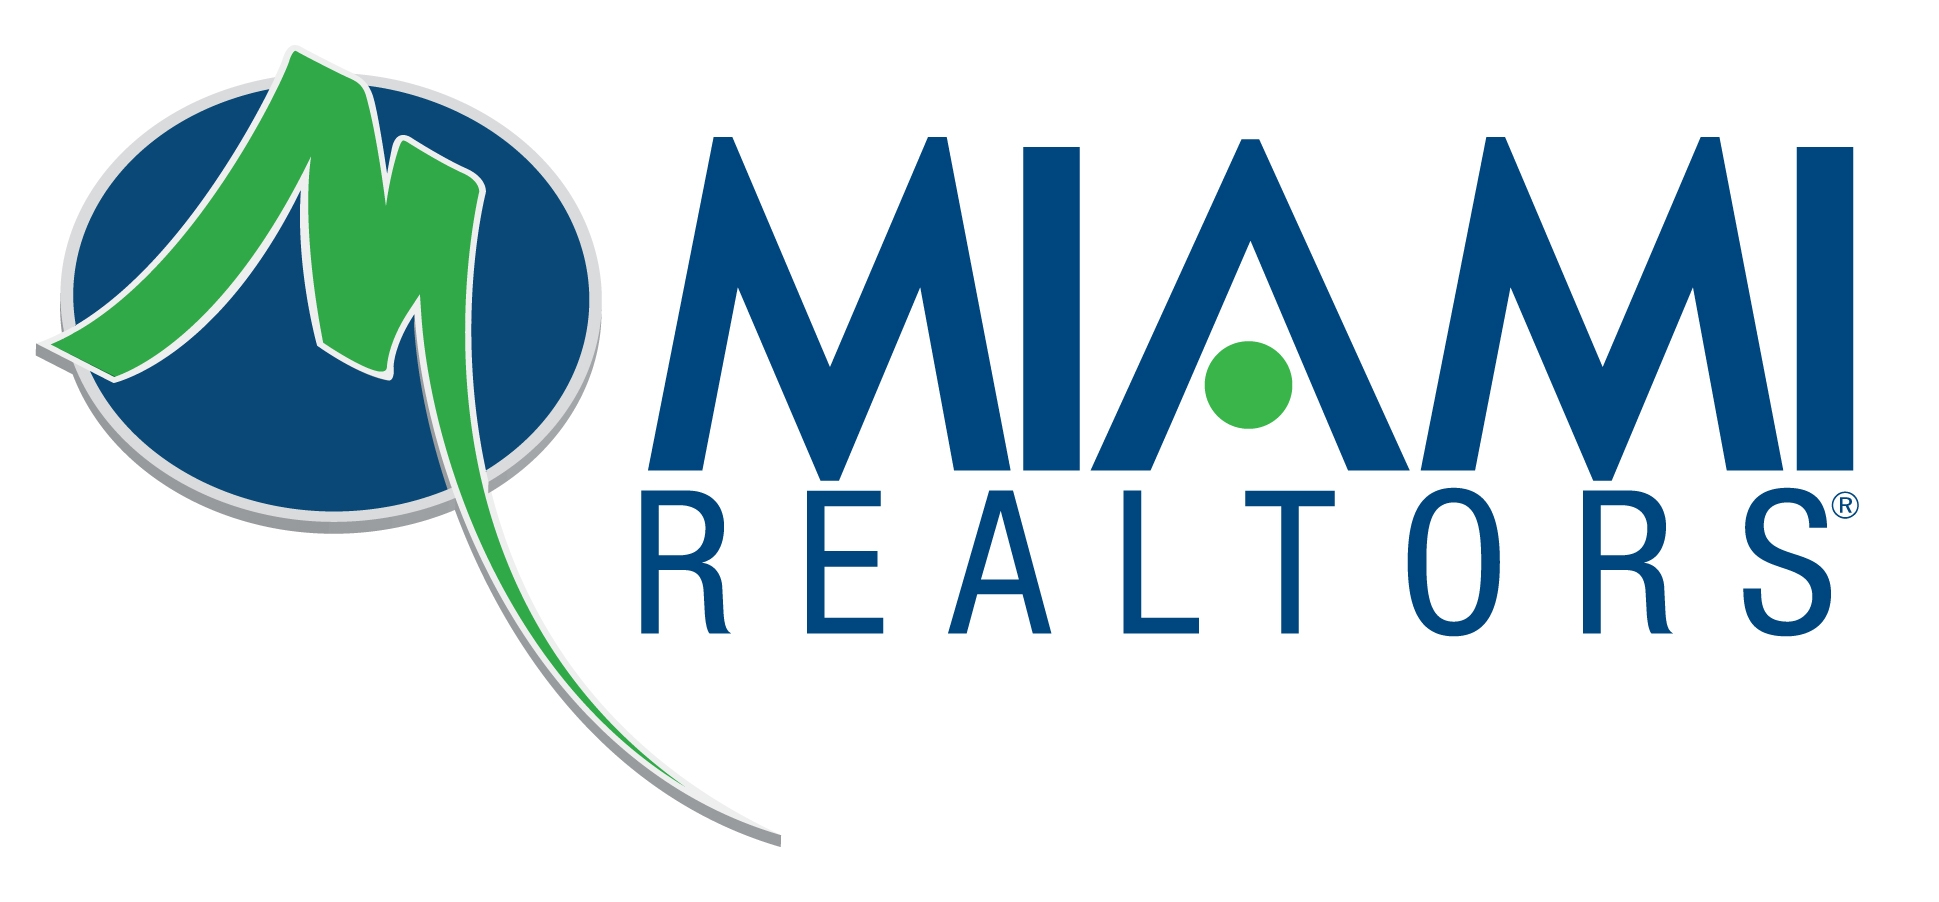 $29/Month Real Estate Agent Websites, with MLS Listing Search, for All Miami Association of Realtors Members Extended Through 2020